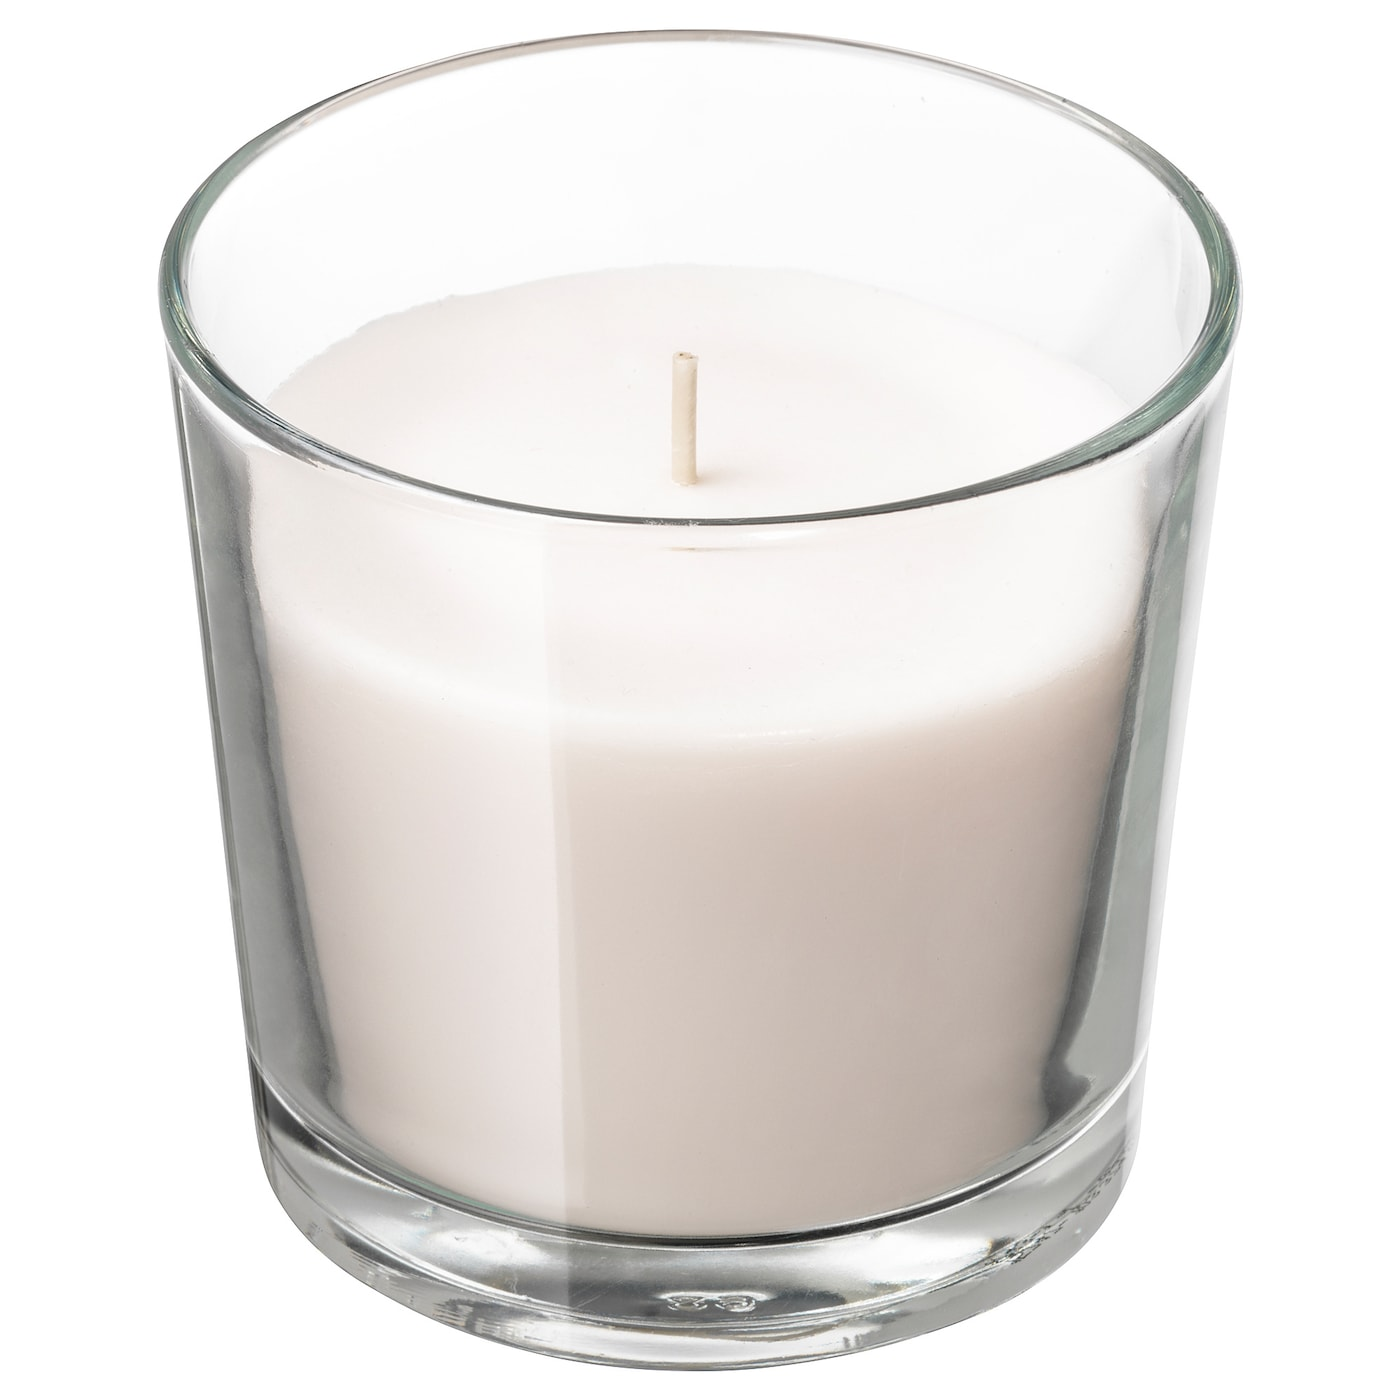 IKEA SINNLIG scented candle in glass Sweet scent of vanilla ice cream and freshly baked waffles.